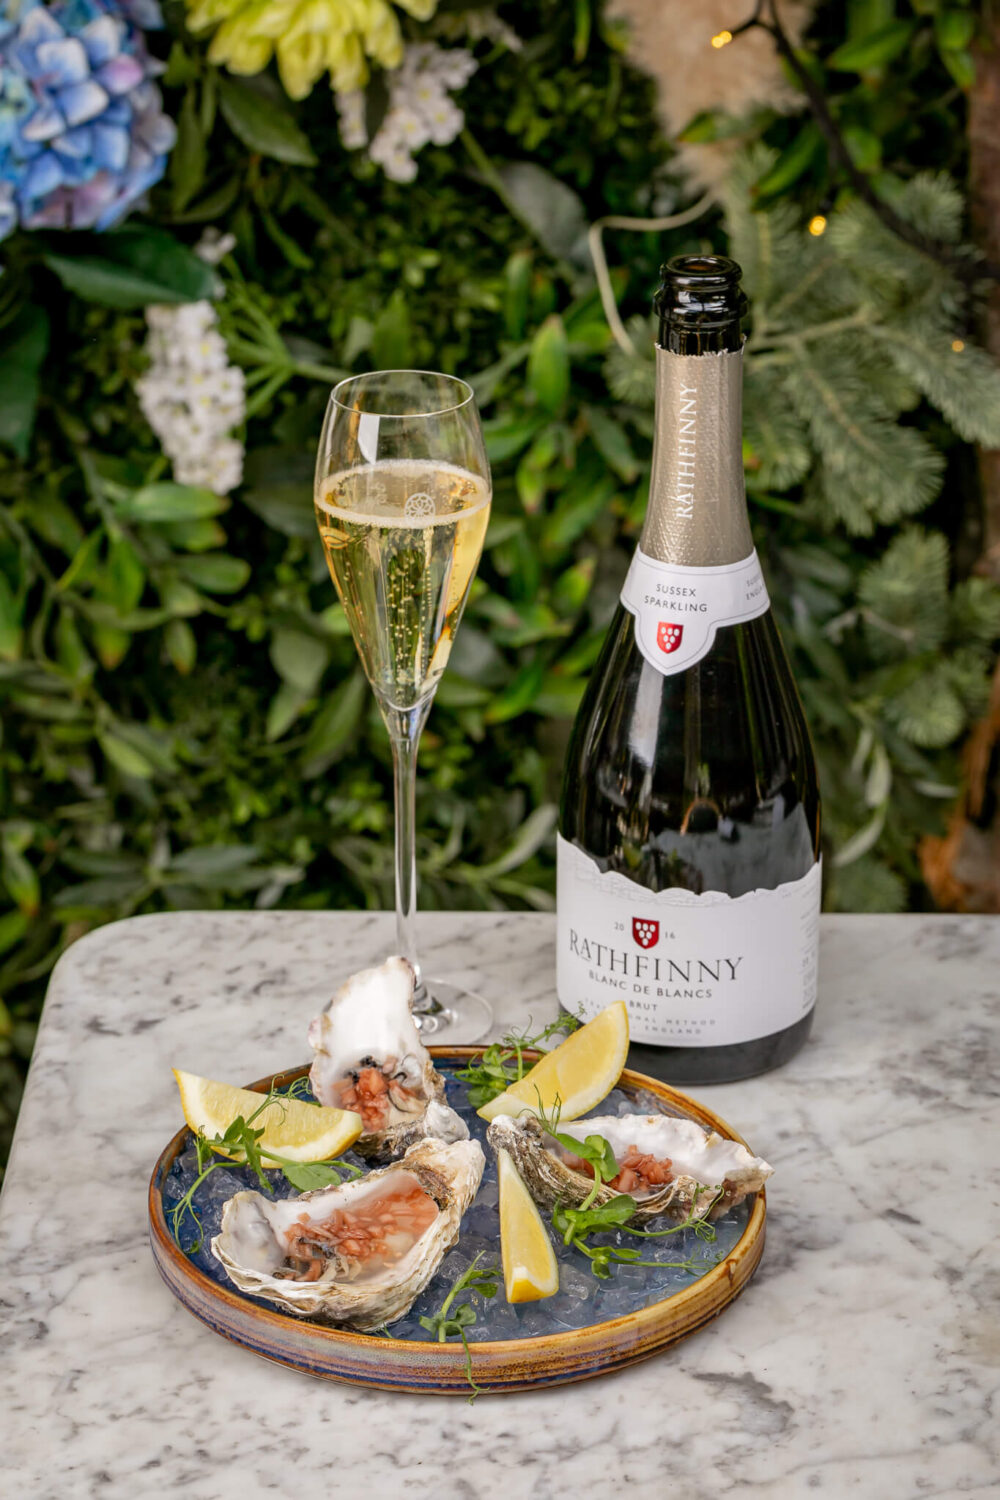 Rathfinny 2016 and Oysters Dalloway Terrace